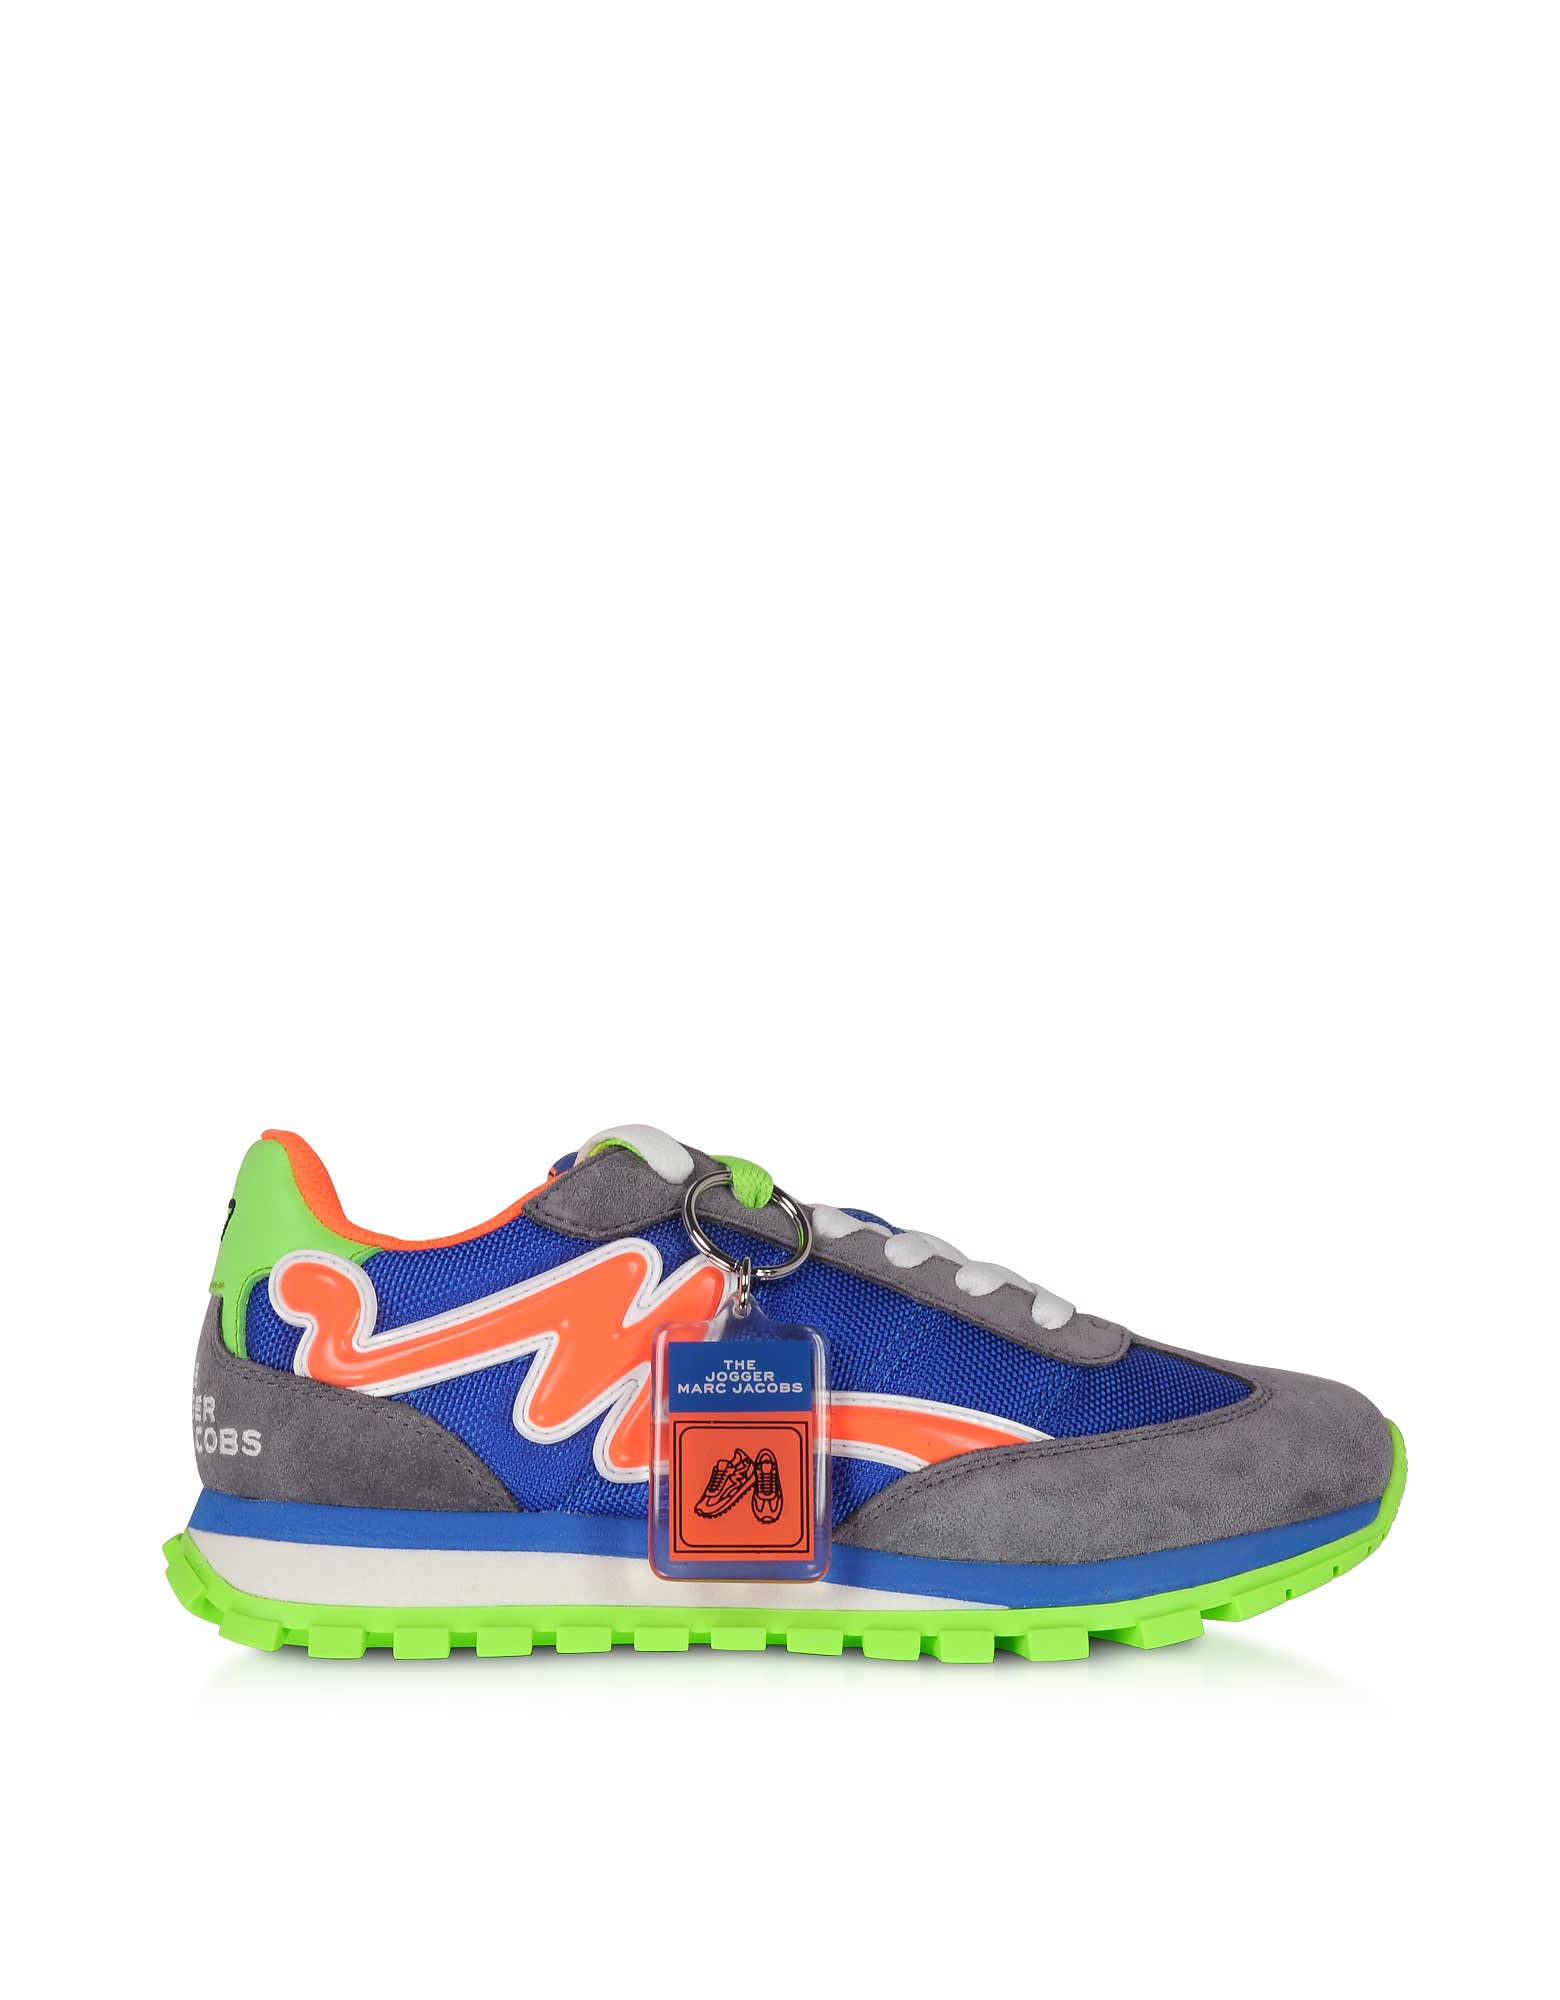 Marc Jacobs The Jogger Tangerine & Blue Nylon Womens Sneakers